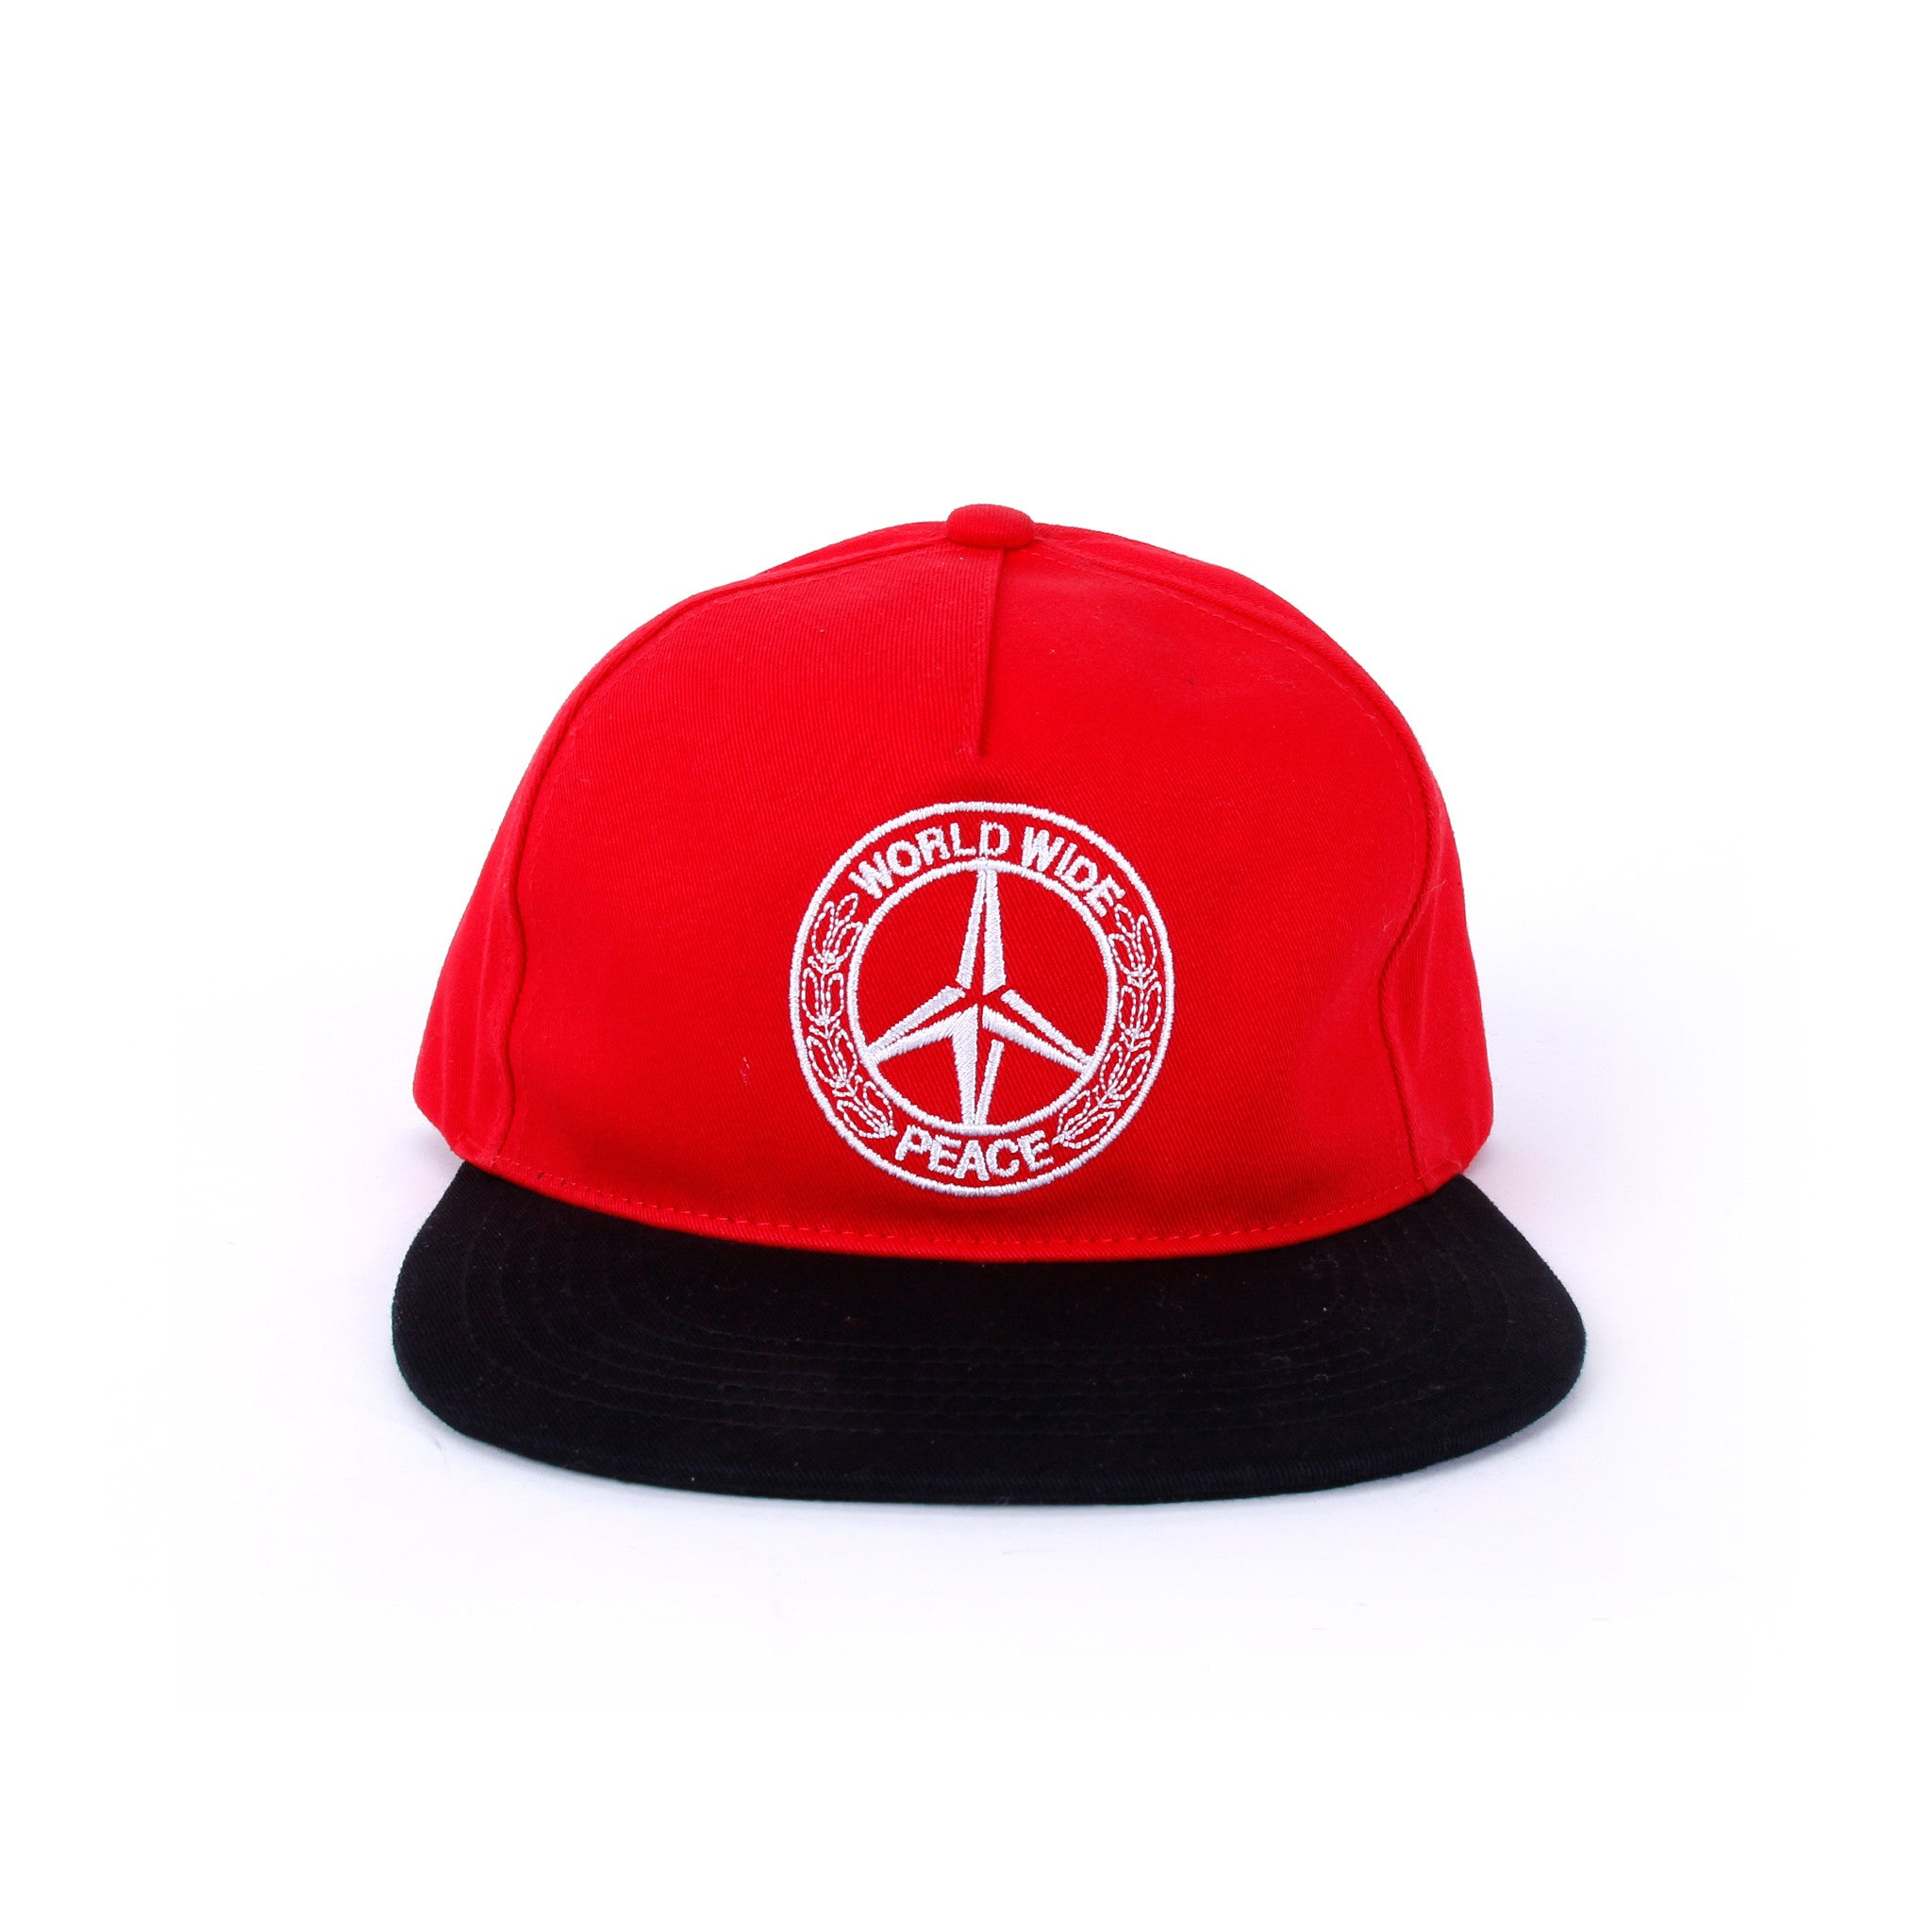 Worldwide Peace Low Profile Strapback Hat